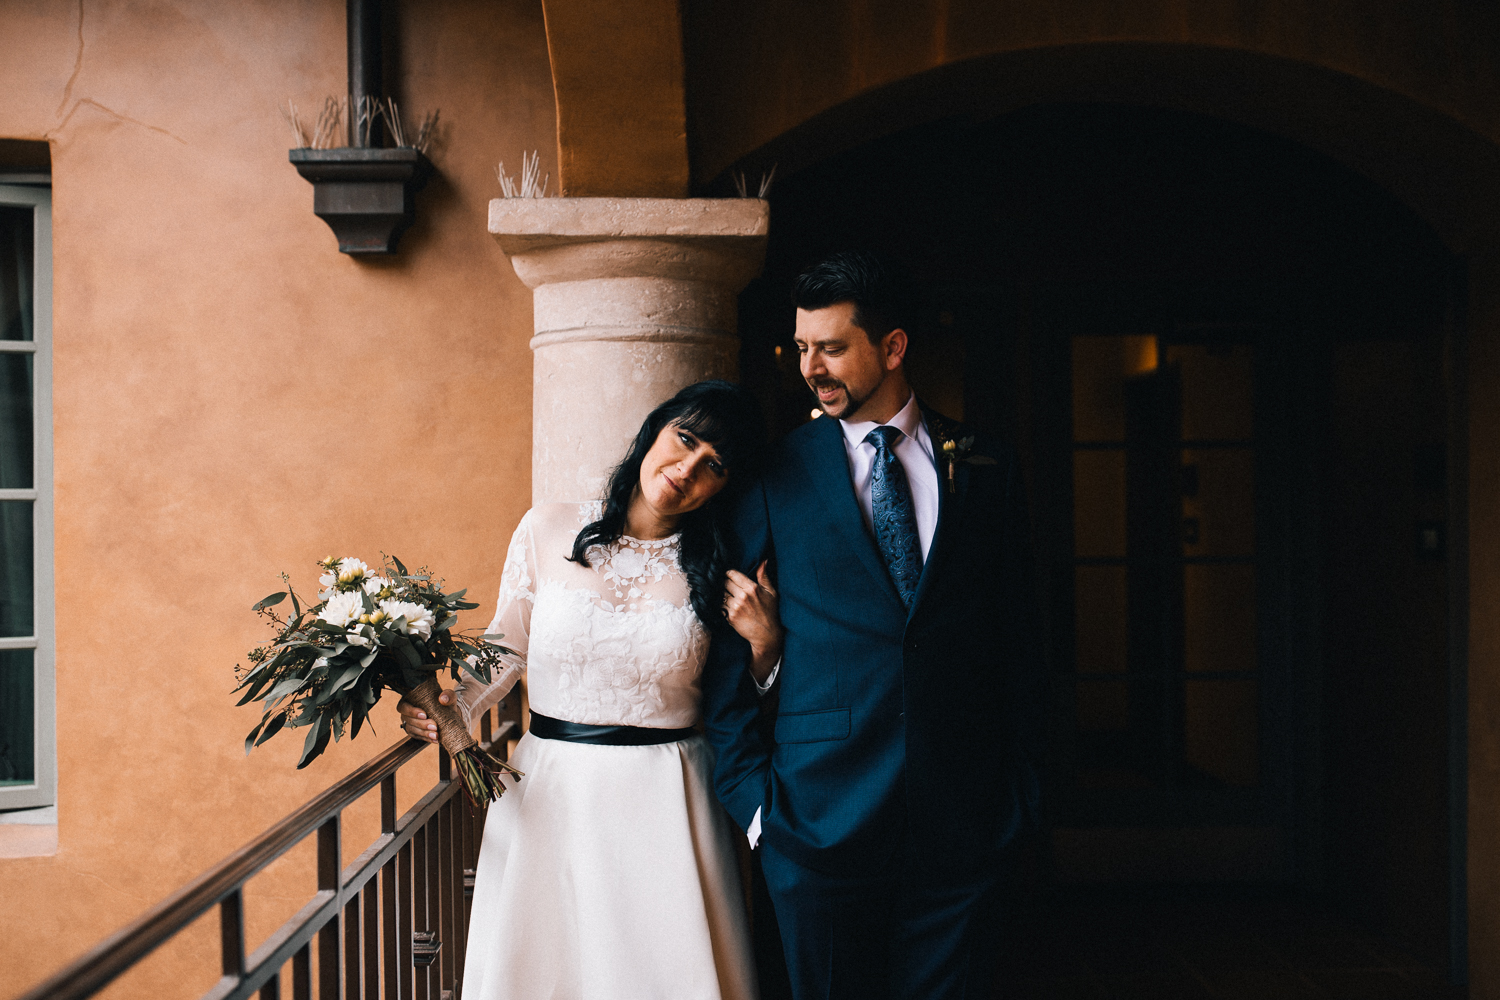 2019_05_ 182019.05.19 Lisa + Eddie South Bay Wedding Blog Photos Edited For Web 0074.jpg